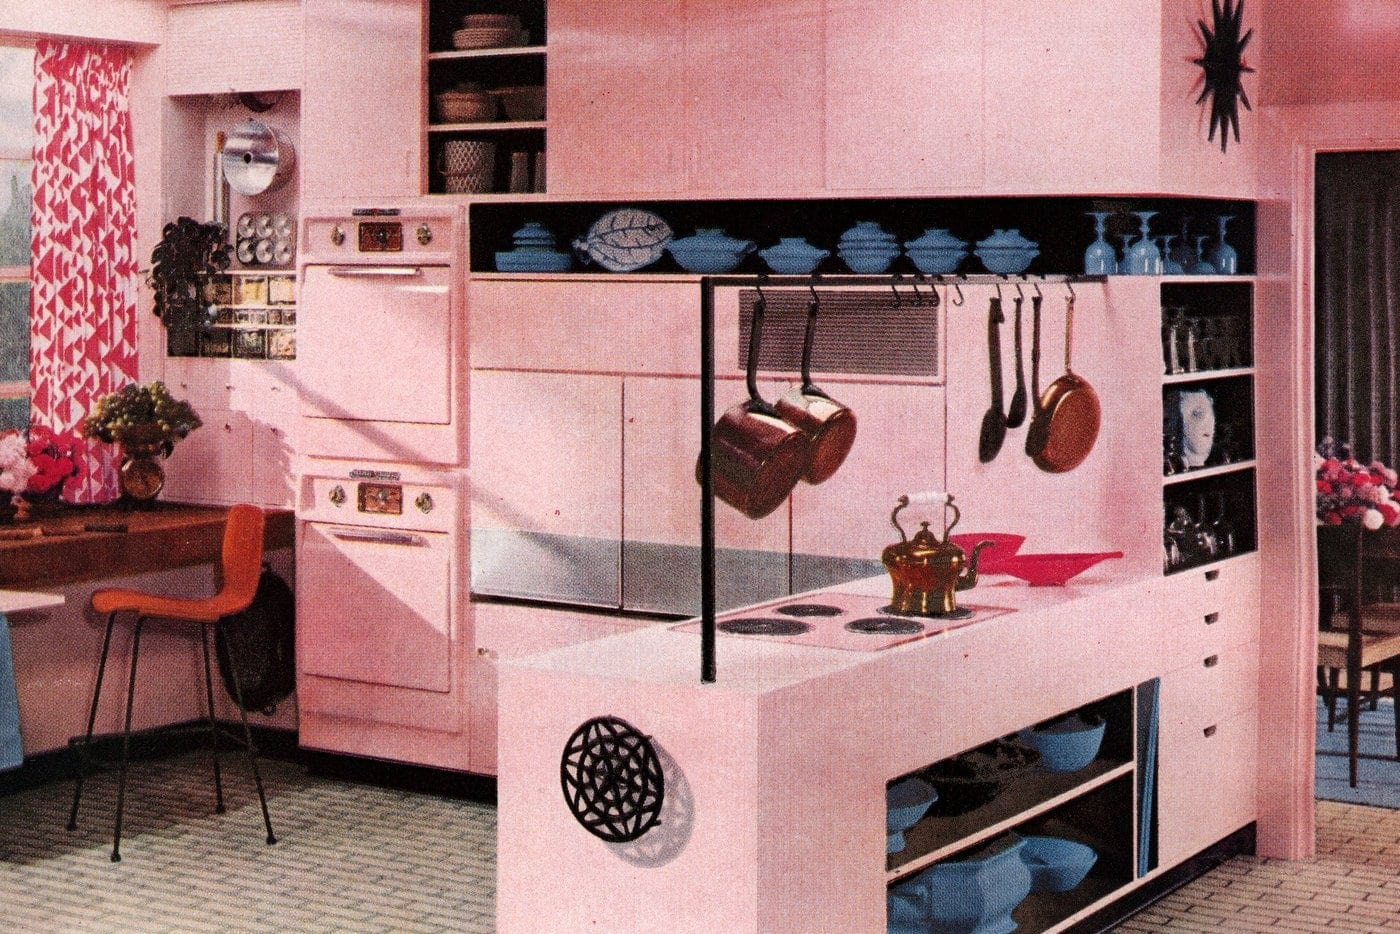 Retro Pink Kitchens 1950s Home Decor You Don T See Much Today Click Americana